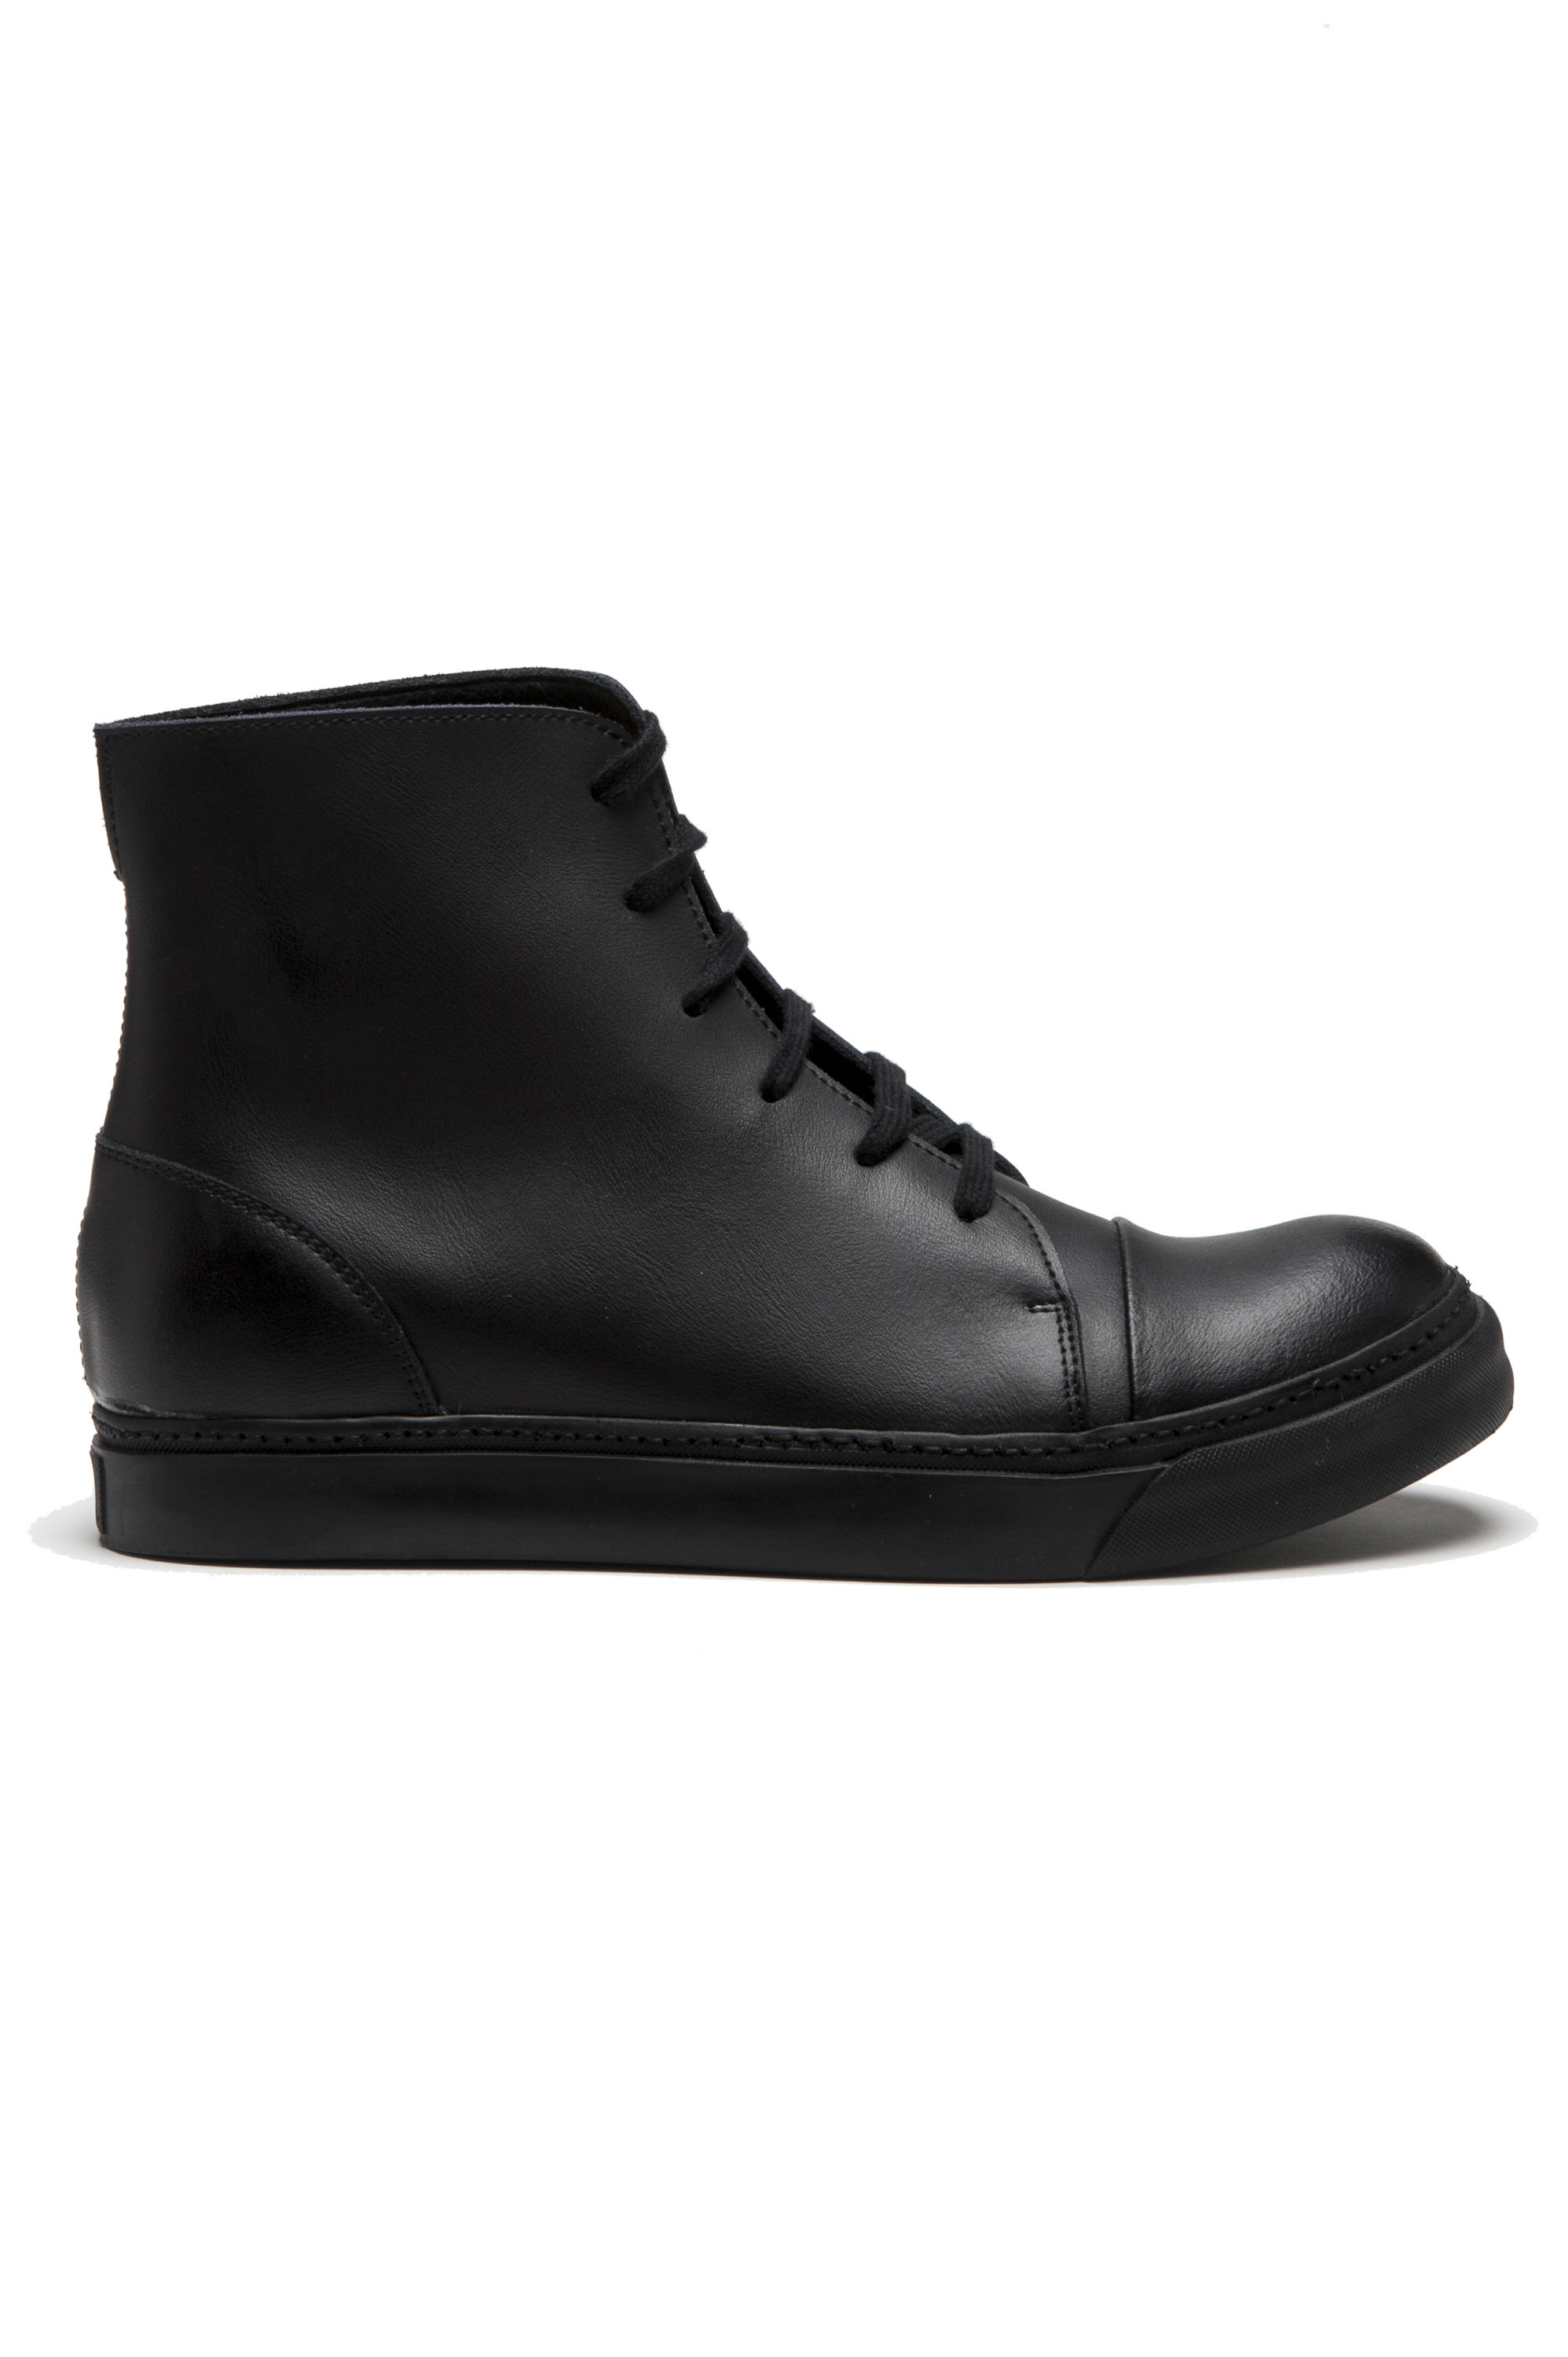 SBU 01518 High top military boots in black calfskin leather 01